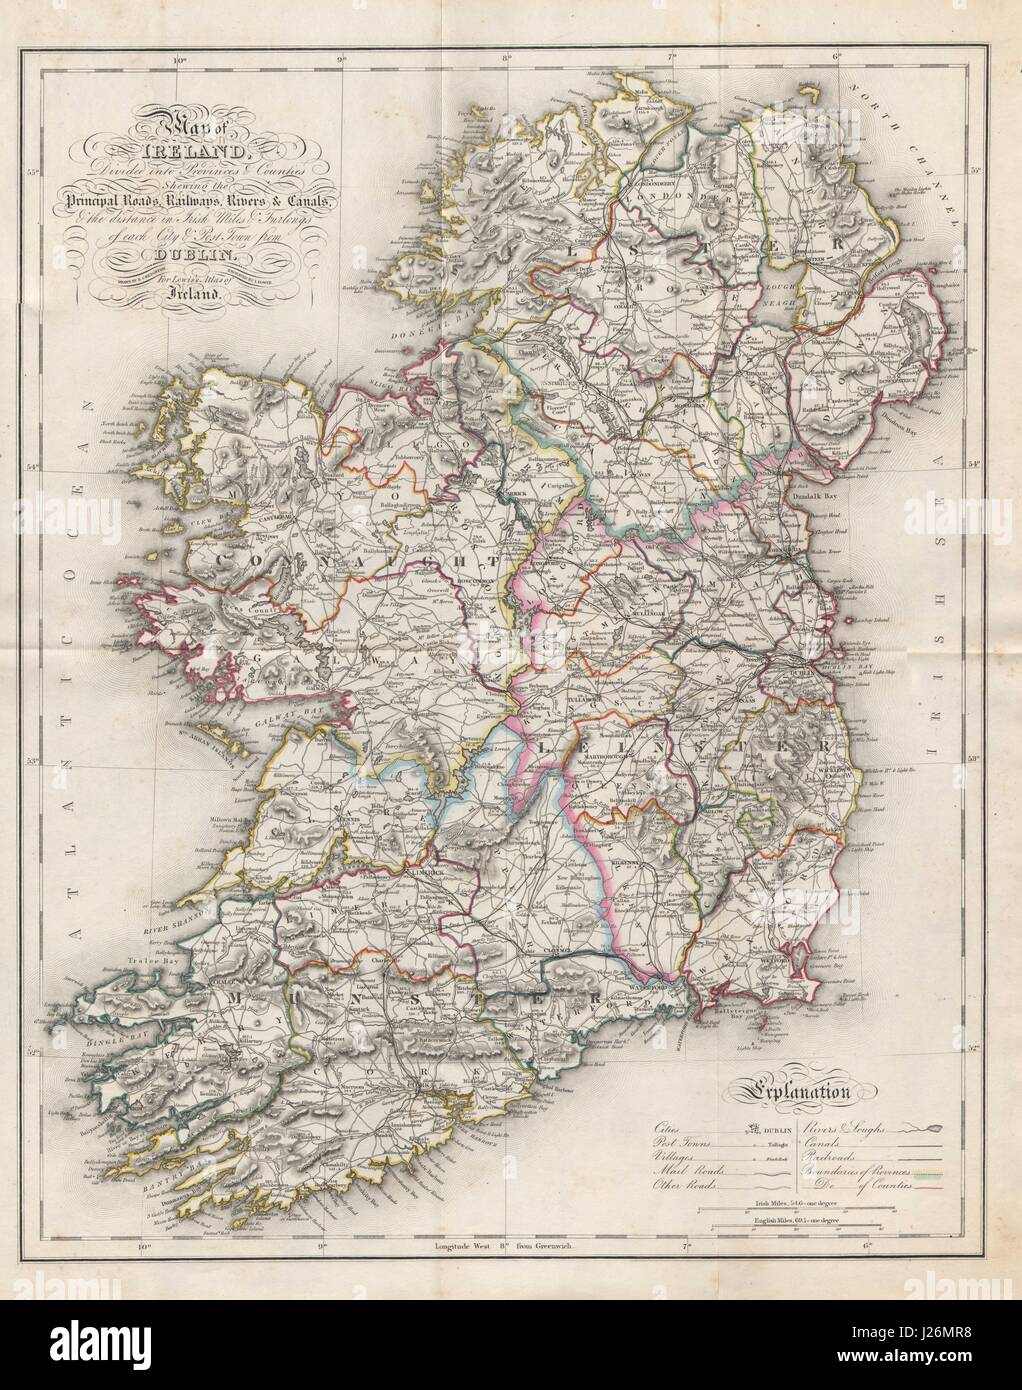 Map Of Ireland 26 Counties.Map Of Ireland Divided Into Provinces Counties Stock Photo